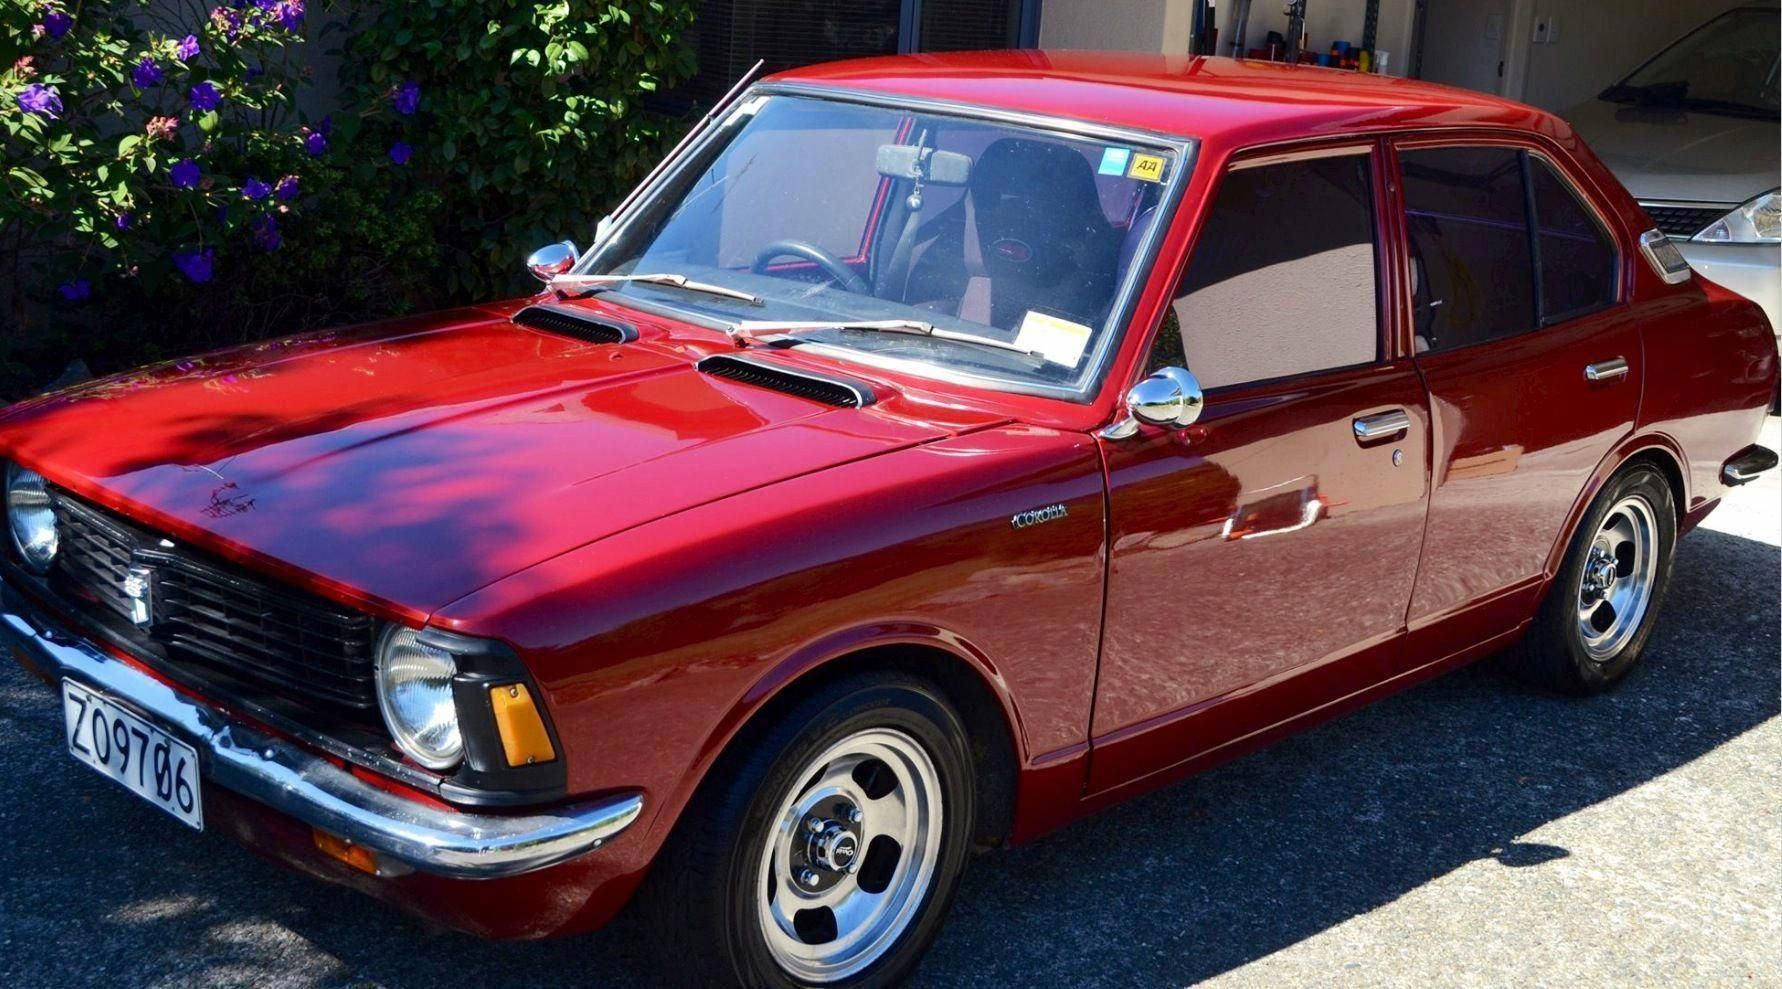 toyota classic cars for sale philippines #Toyotaclassiccars